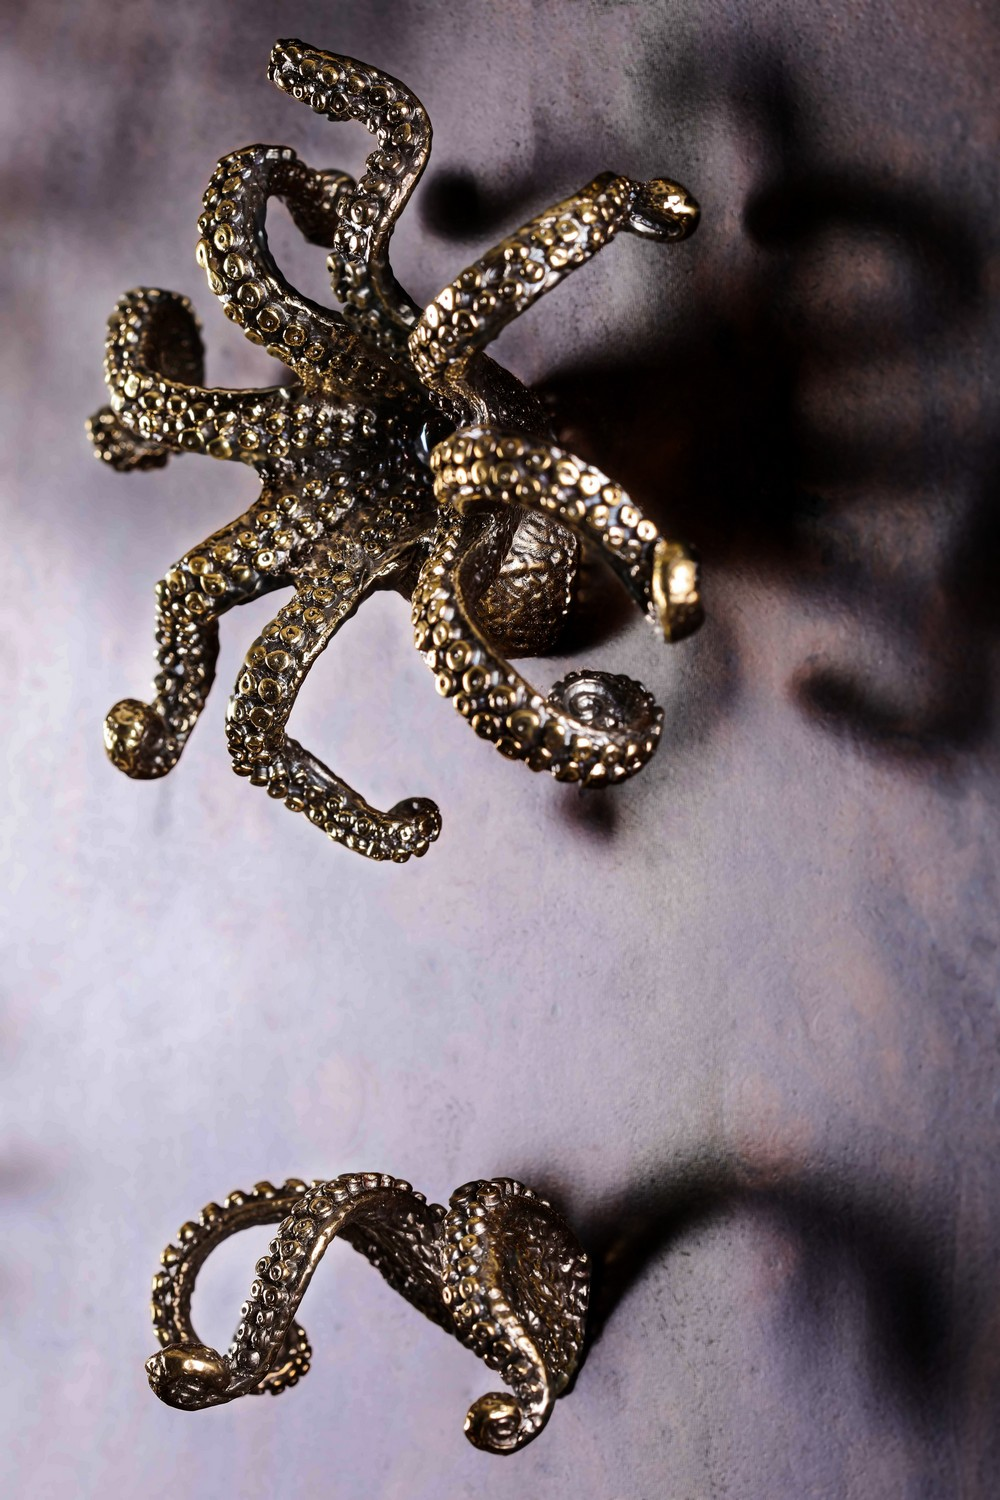 Sea Creature-Inspired Decorative Hardware for a Home Decor Freshen Up 1 decorative hardware Sea Creature-Inspired Decorative Hardware for a Home Decor Freshen Up Sea Creature Inspired Decorative Hardware for a Home Decor Freshen Up 1